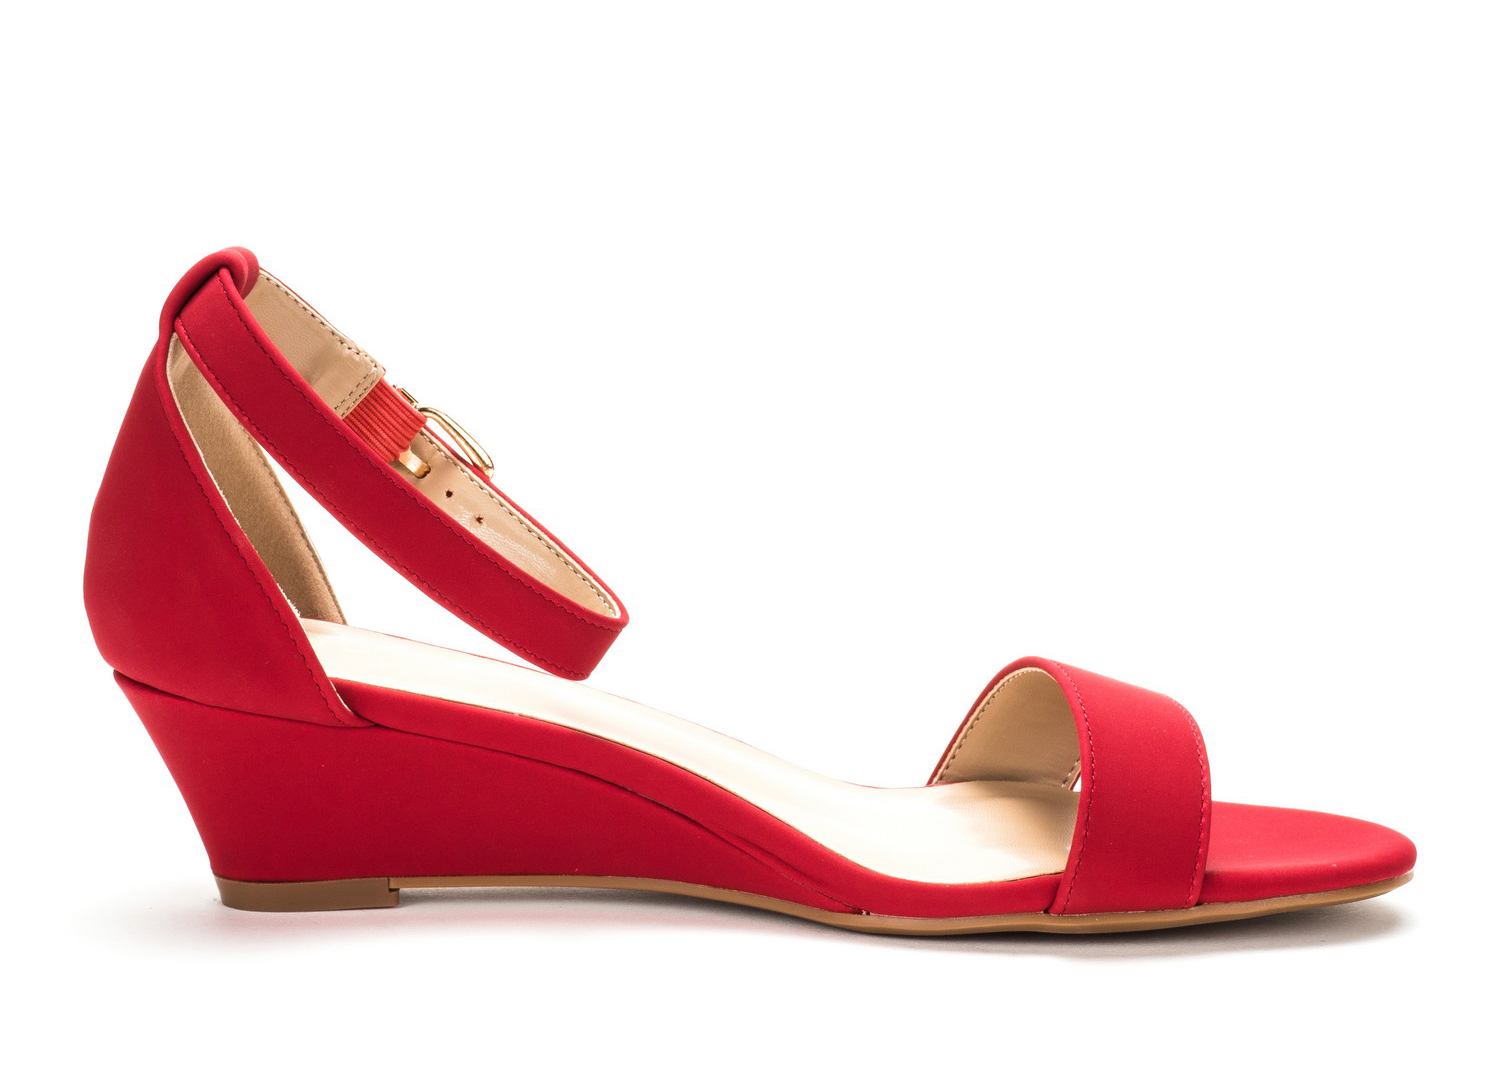 DREAM-PAIRS-Women-039-s-Ankle-Strap-Low-Wedge-Sandals-Open-Toe-Casual-Dress-Shoes thumbnail 36